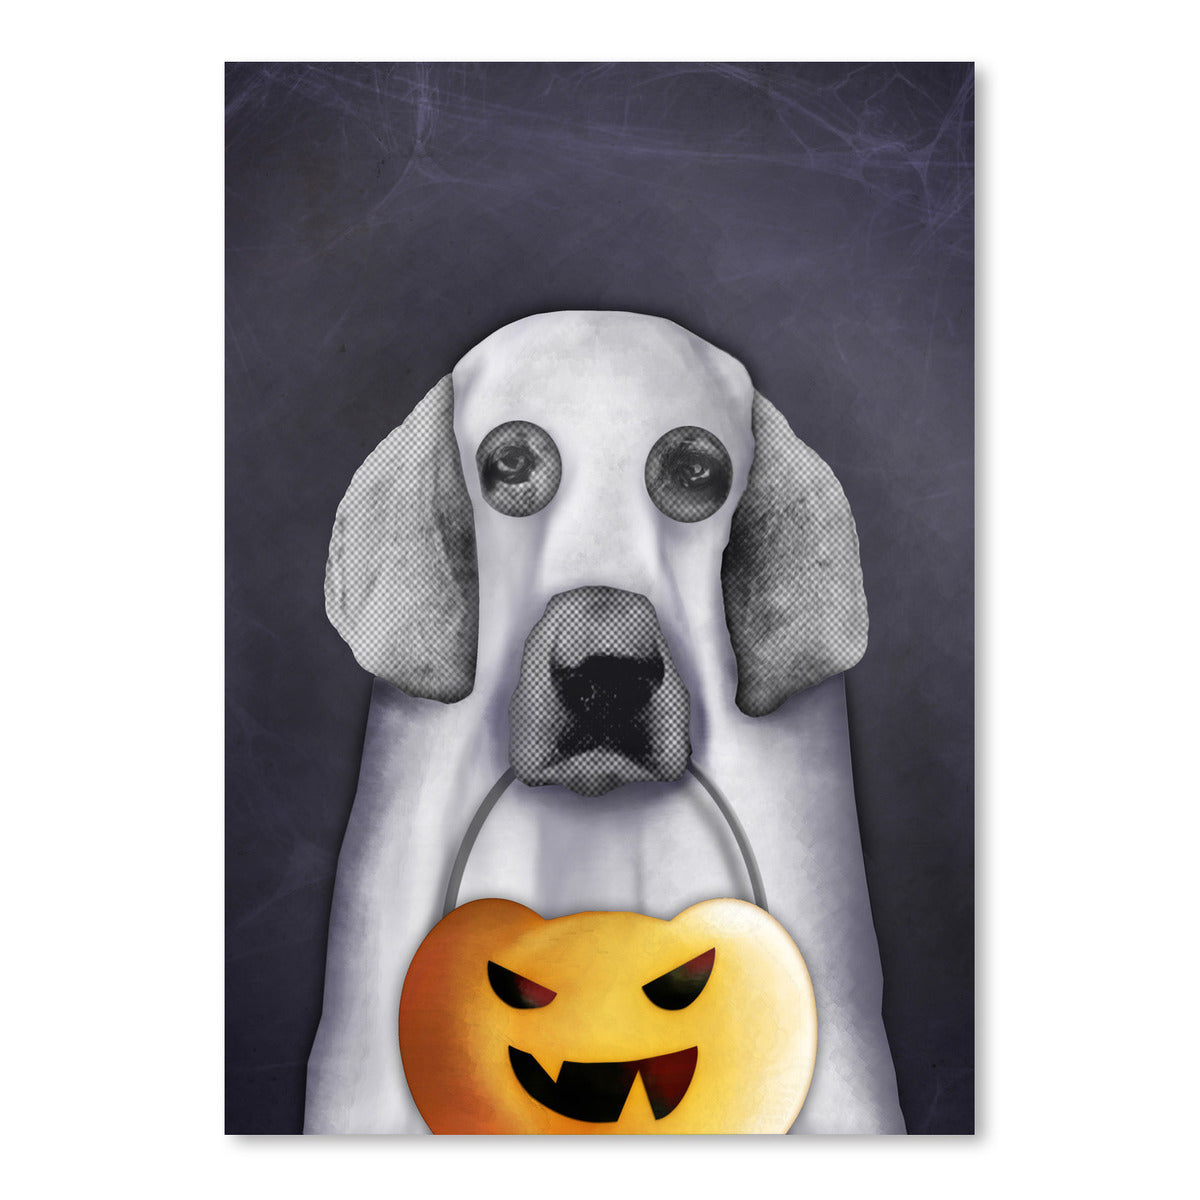 Doggy The Pooh As Ghost by Emanuela Carratoni Art Print - Art Print - Americanflat